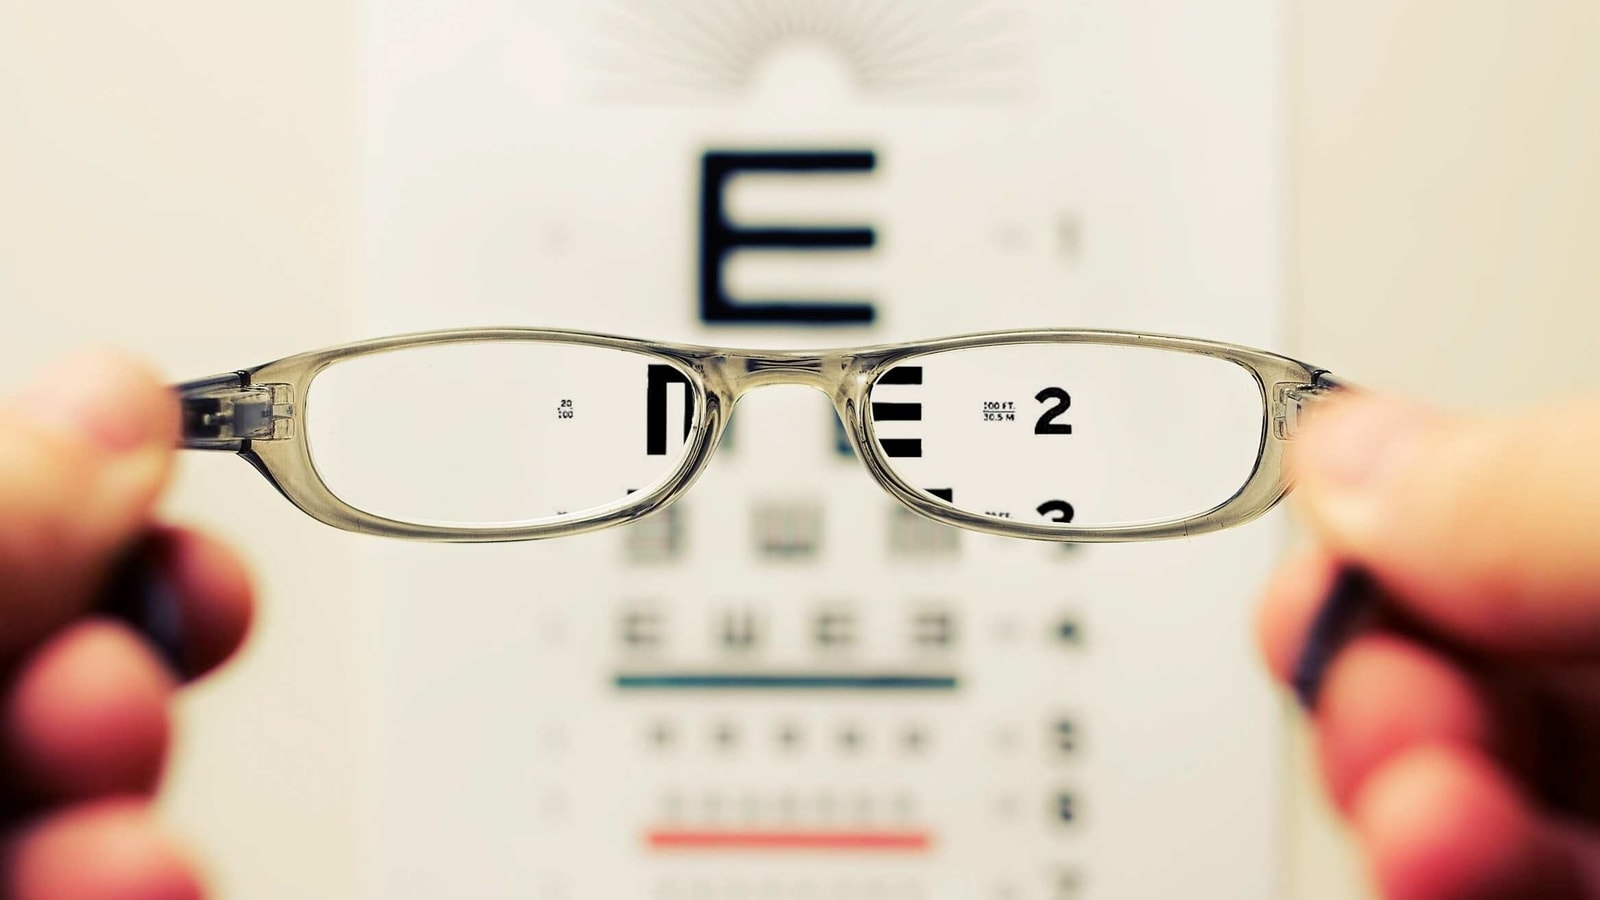 The study shows that mortality is associated with visual impairment